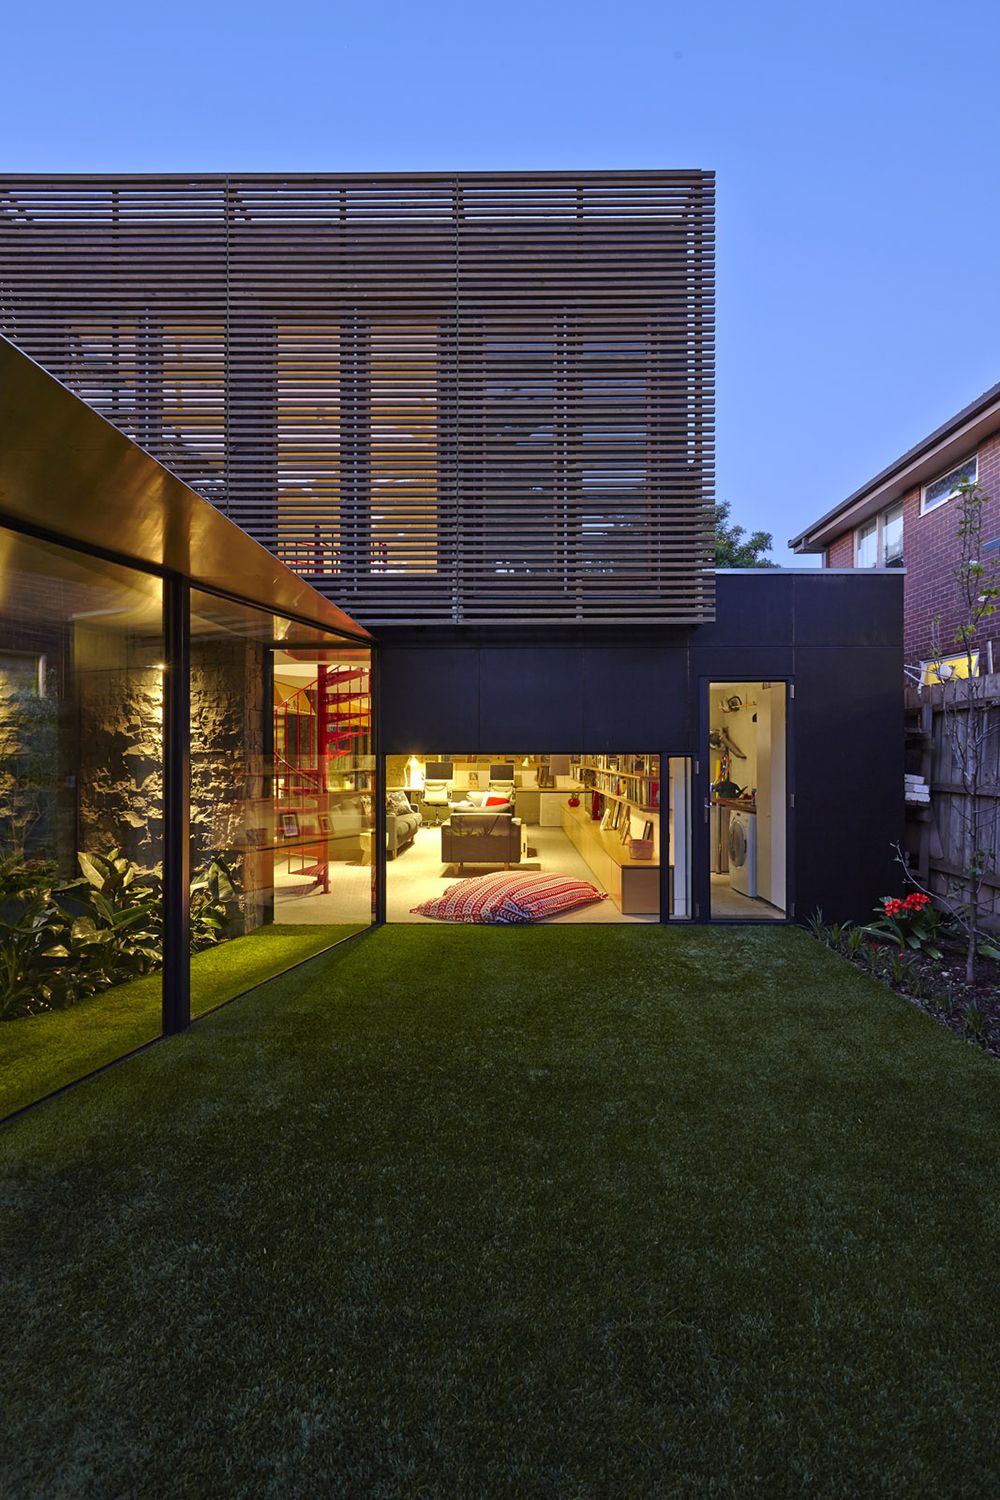 Walker House by Maynard Architects